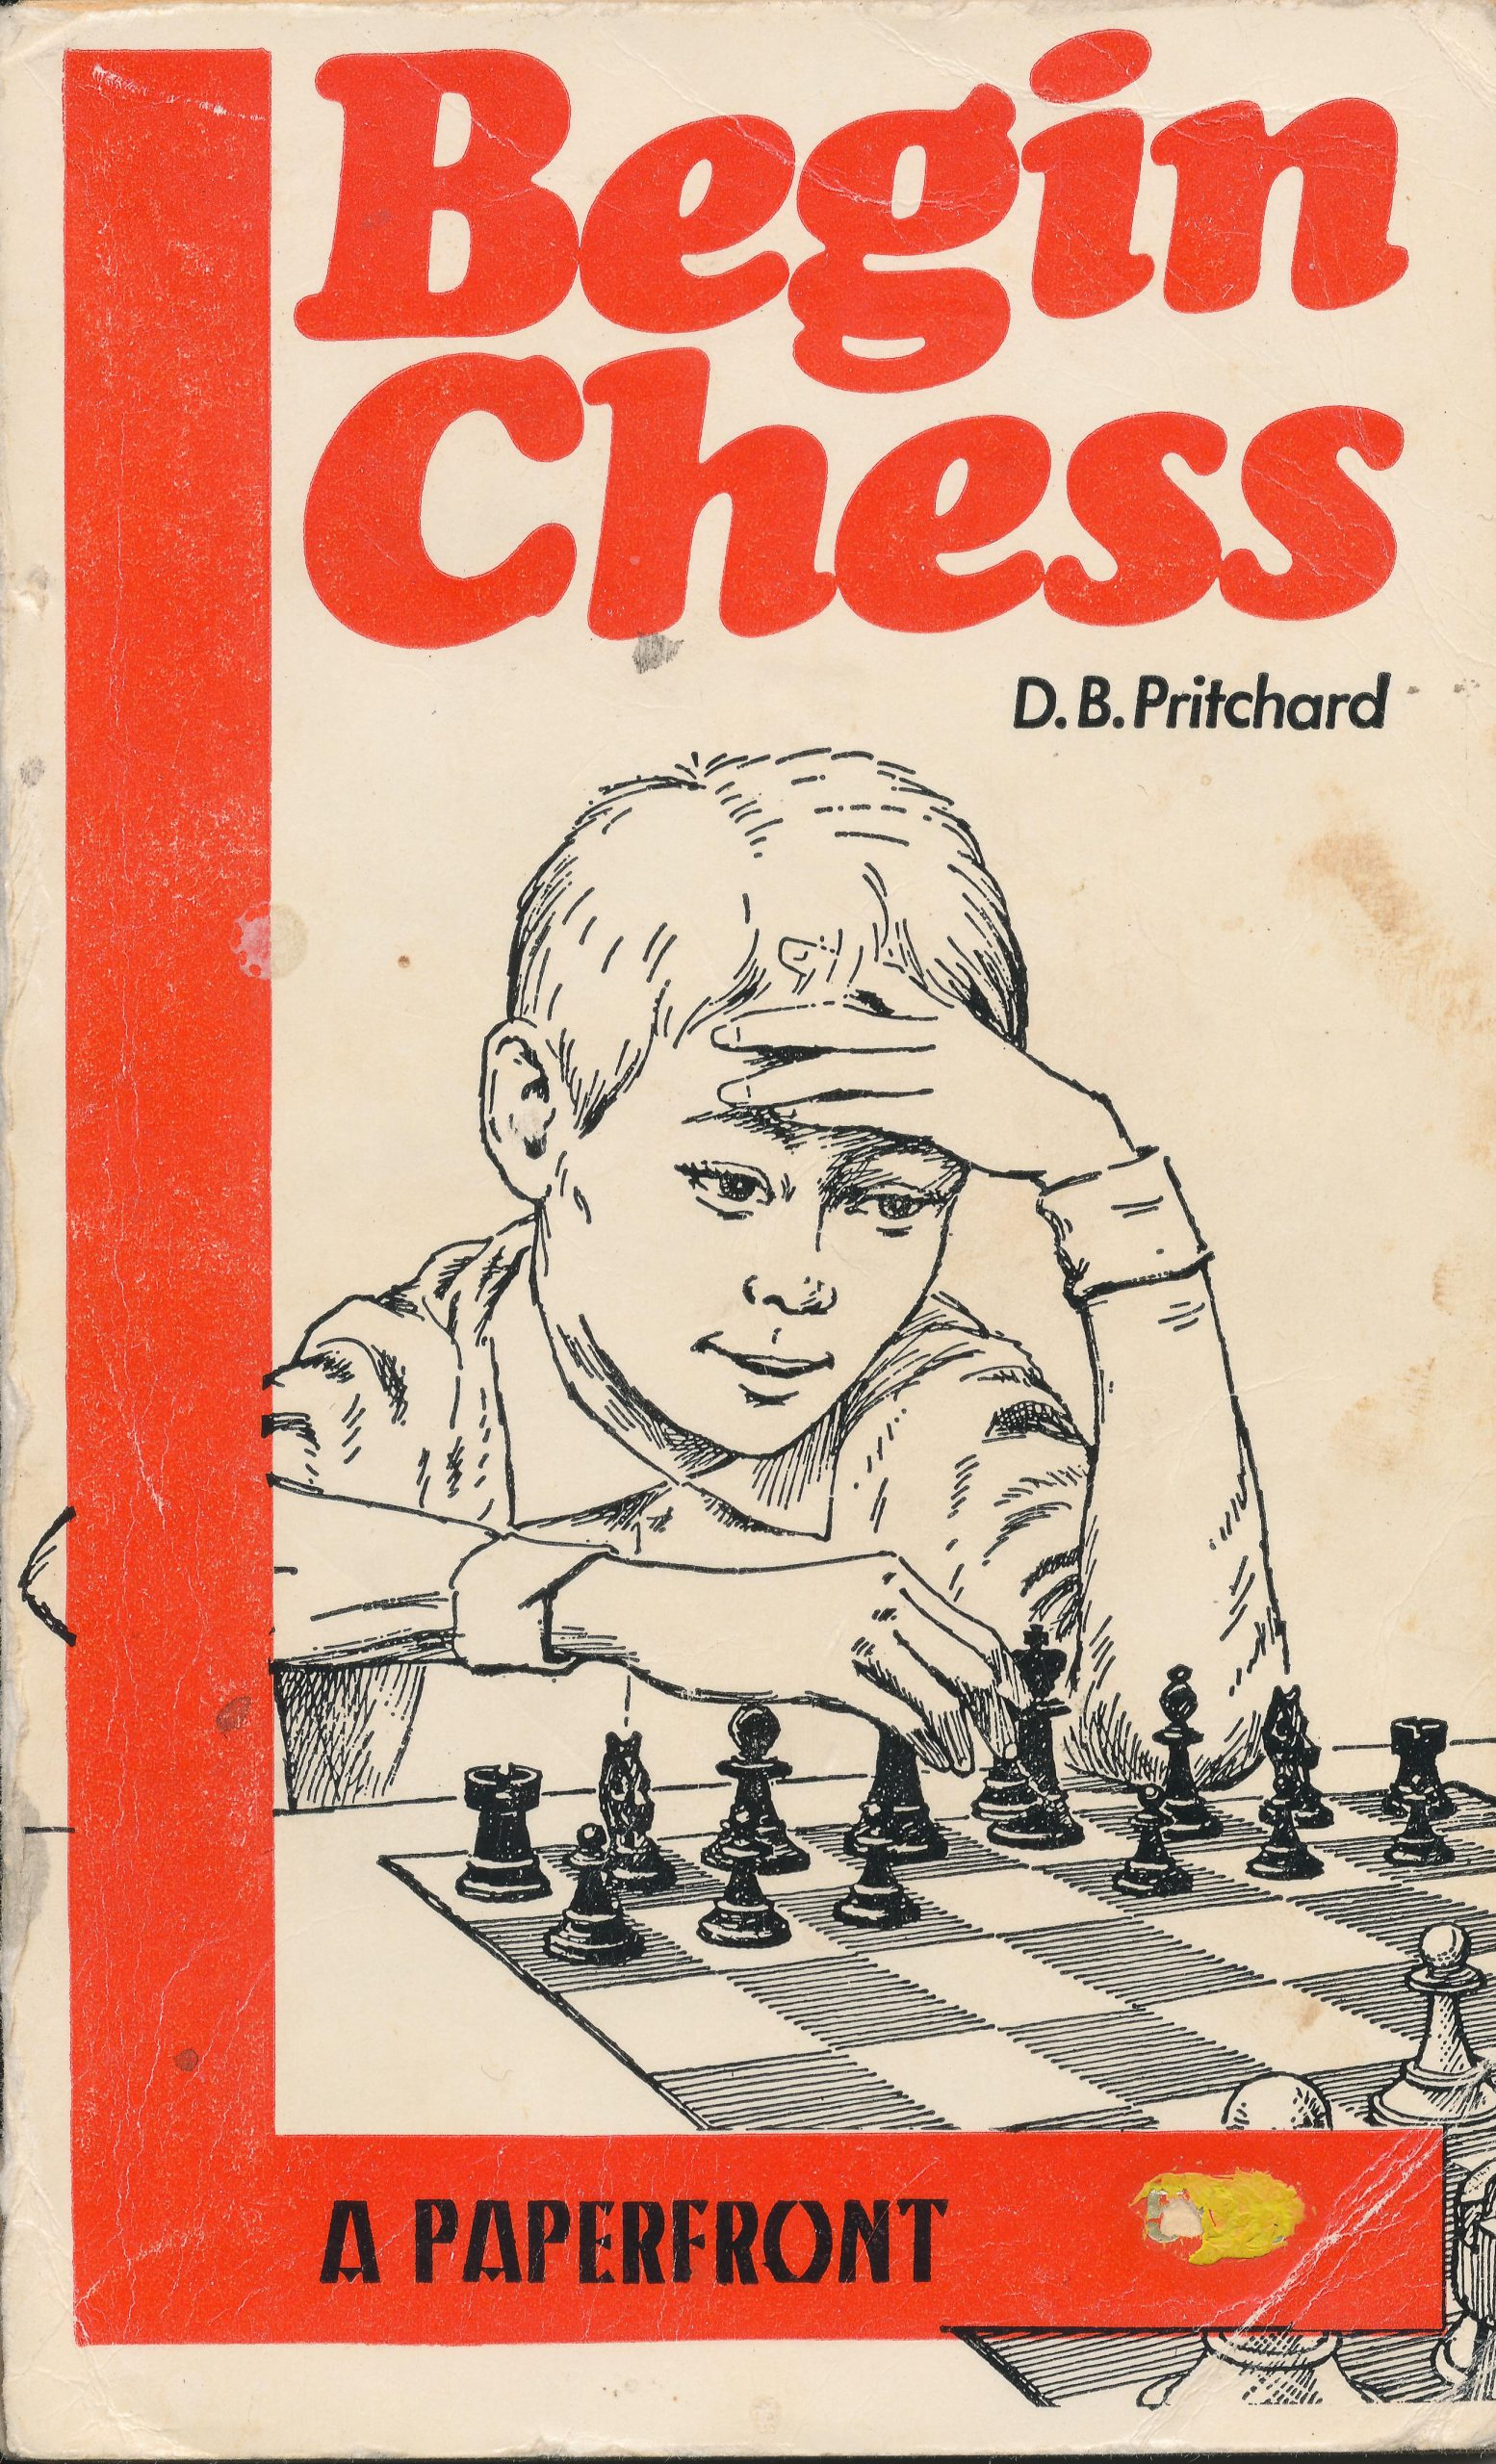 Begin Chess by David Brine Pritchard, Elliot Right Way Books, 1970